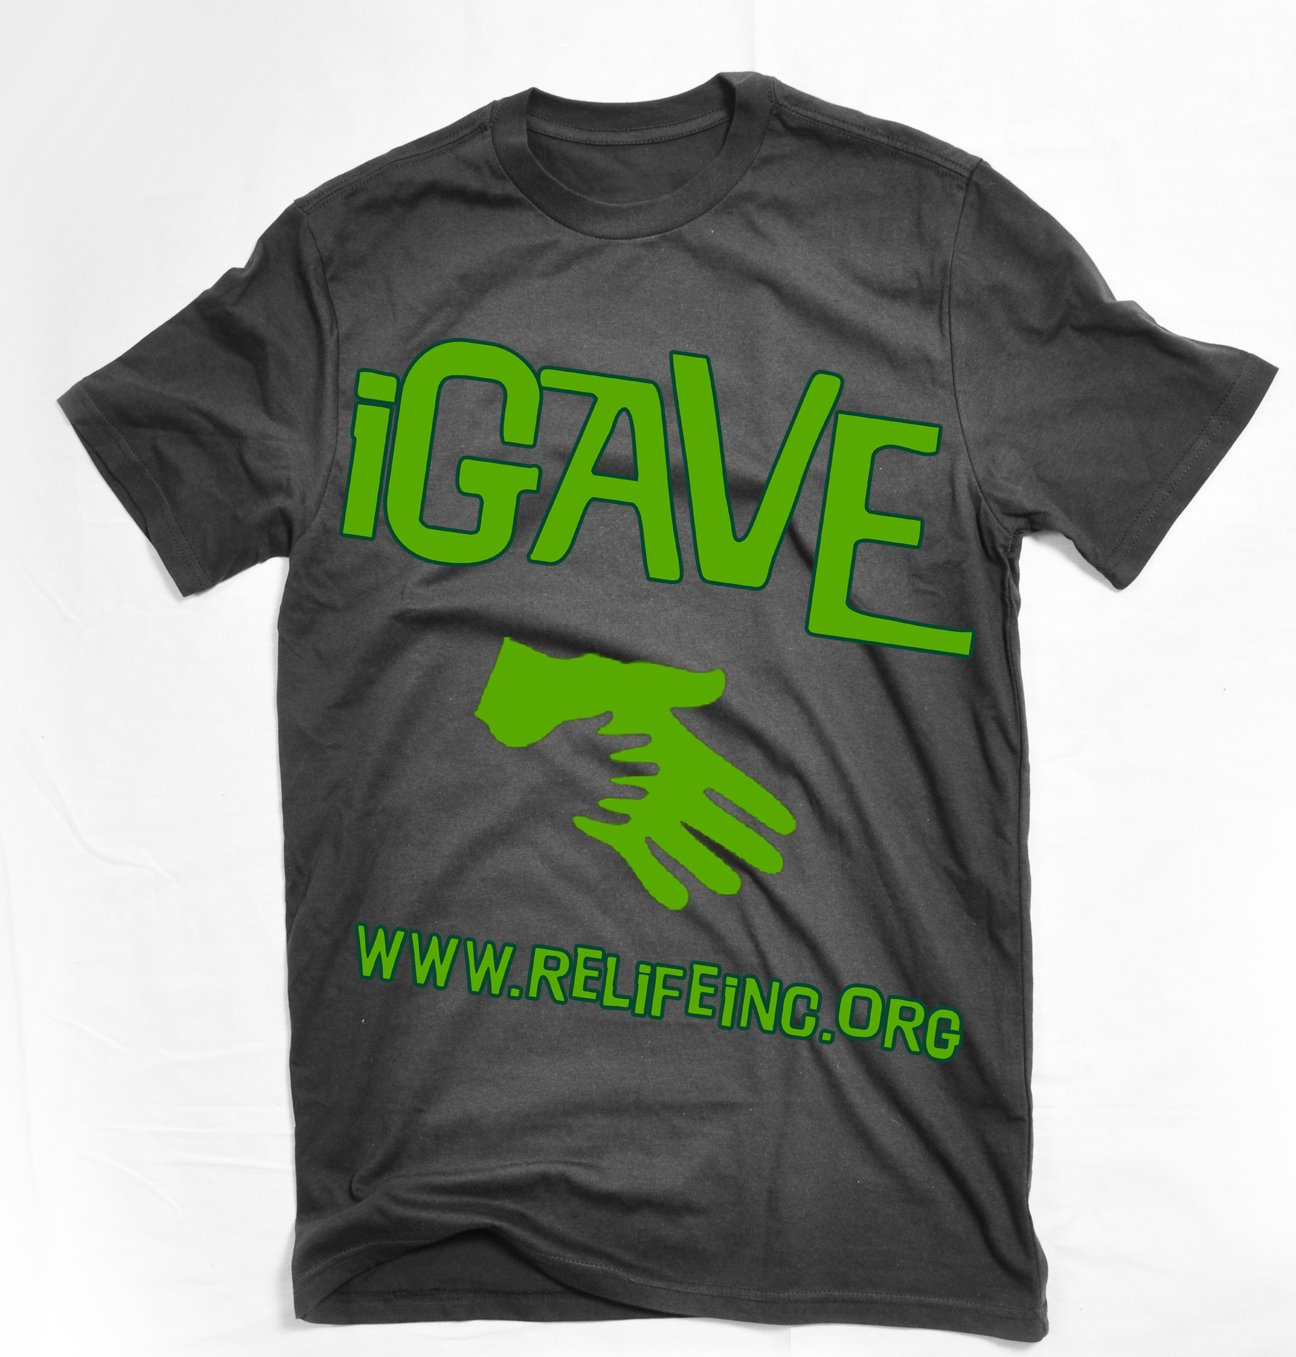 Re:LIFE 'iGAVE' Tees - Small